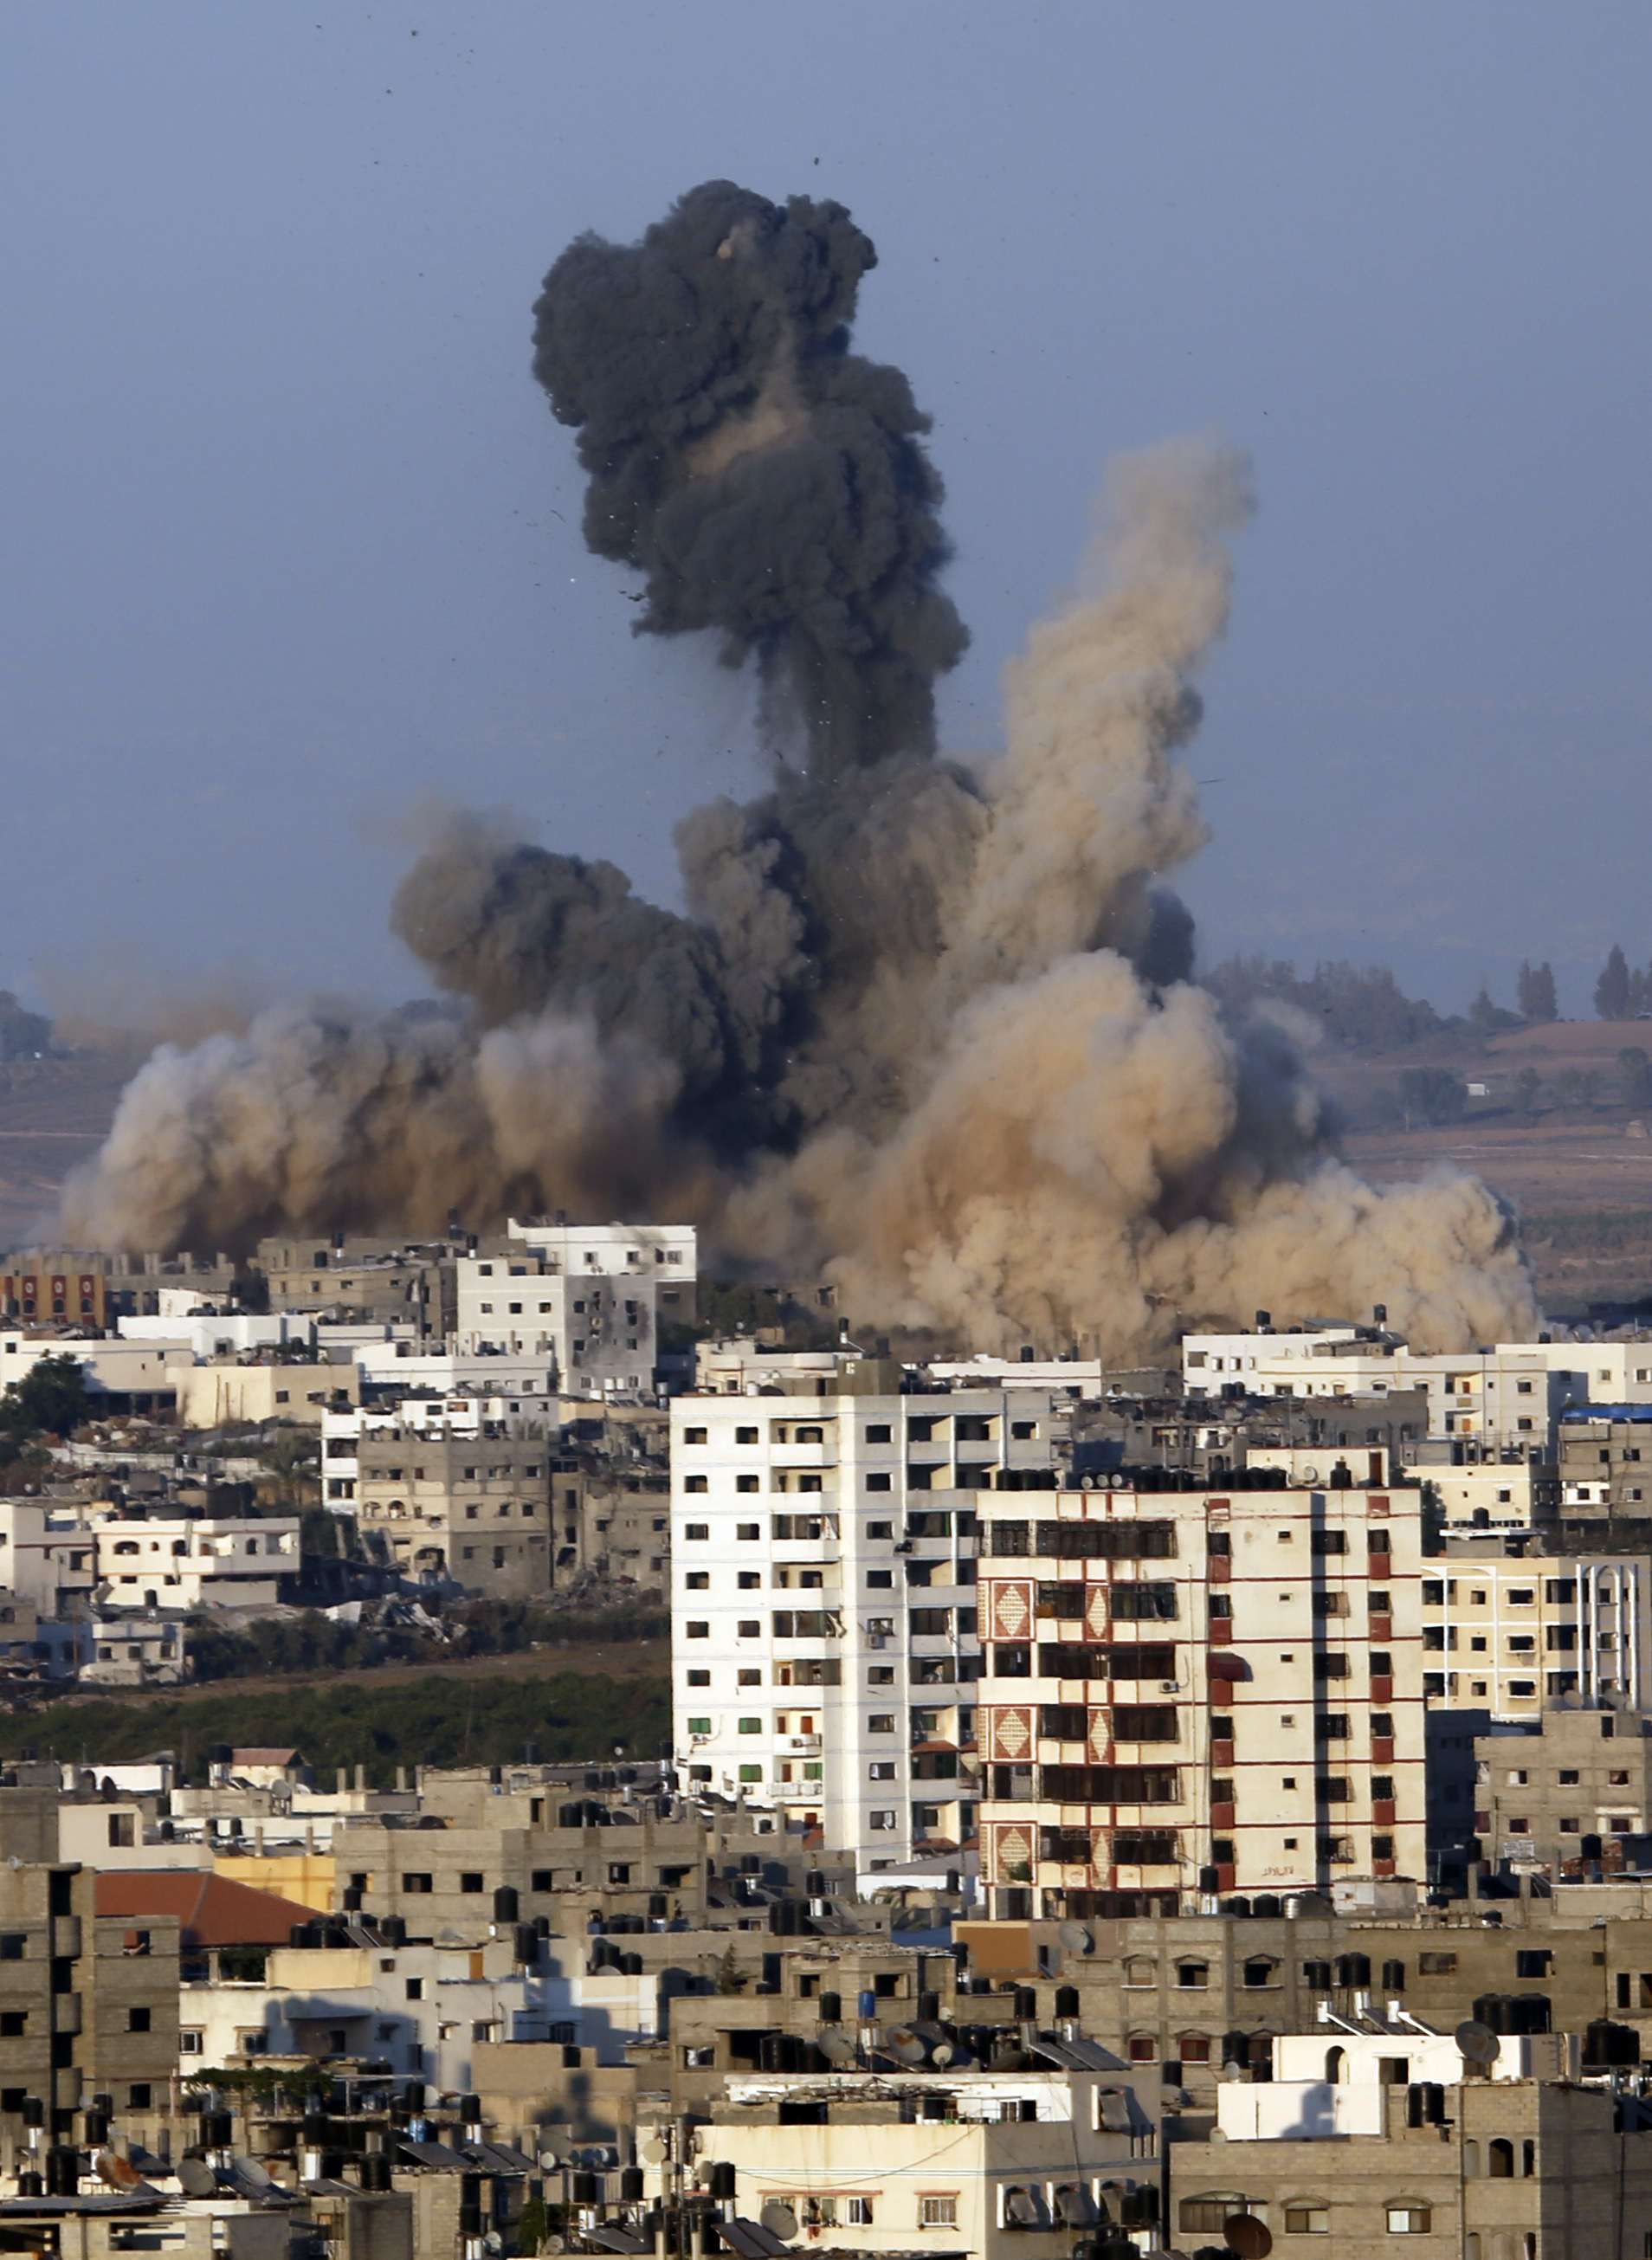 Smoke and sand rise in the air after an Israeli strike, in Gaza City, northern Gaza Strip, Saturday, Aug. 2, 2014. (AP Photo/Hatem Moussa)             (8871032)